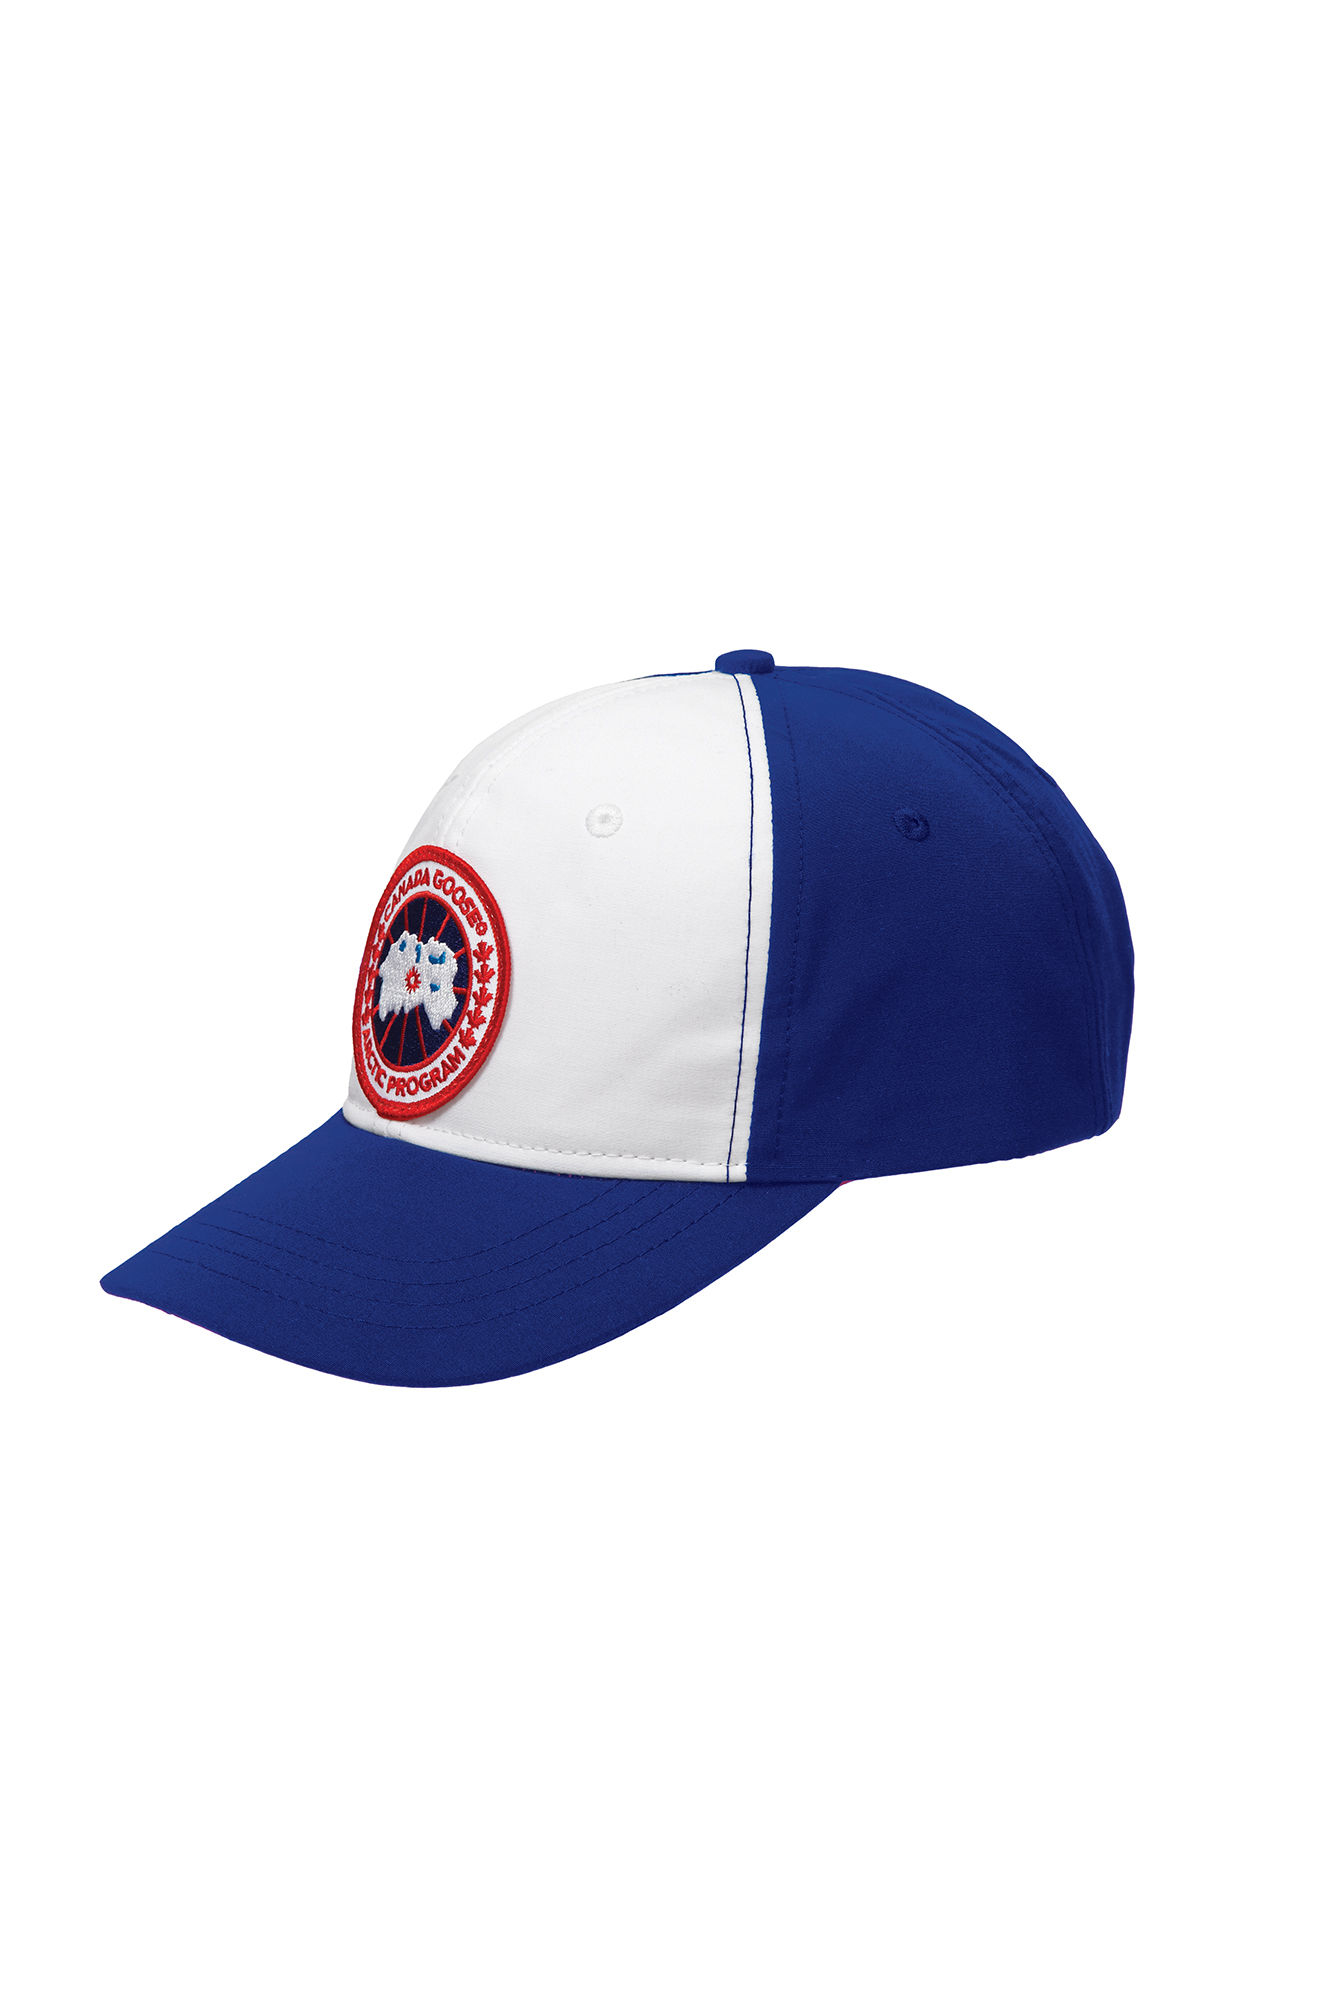 Canada Goose hats outlet price - Canada goose Cap in Blue for Men (Pacific Blue/White) | Lyst